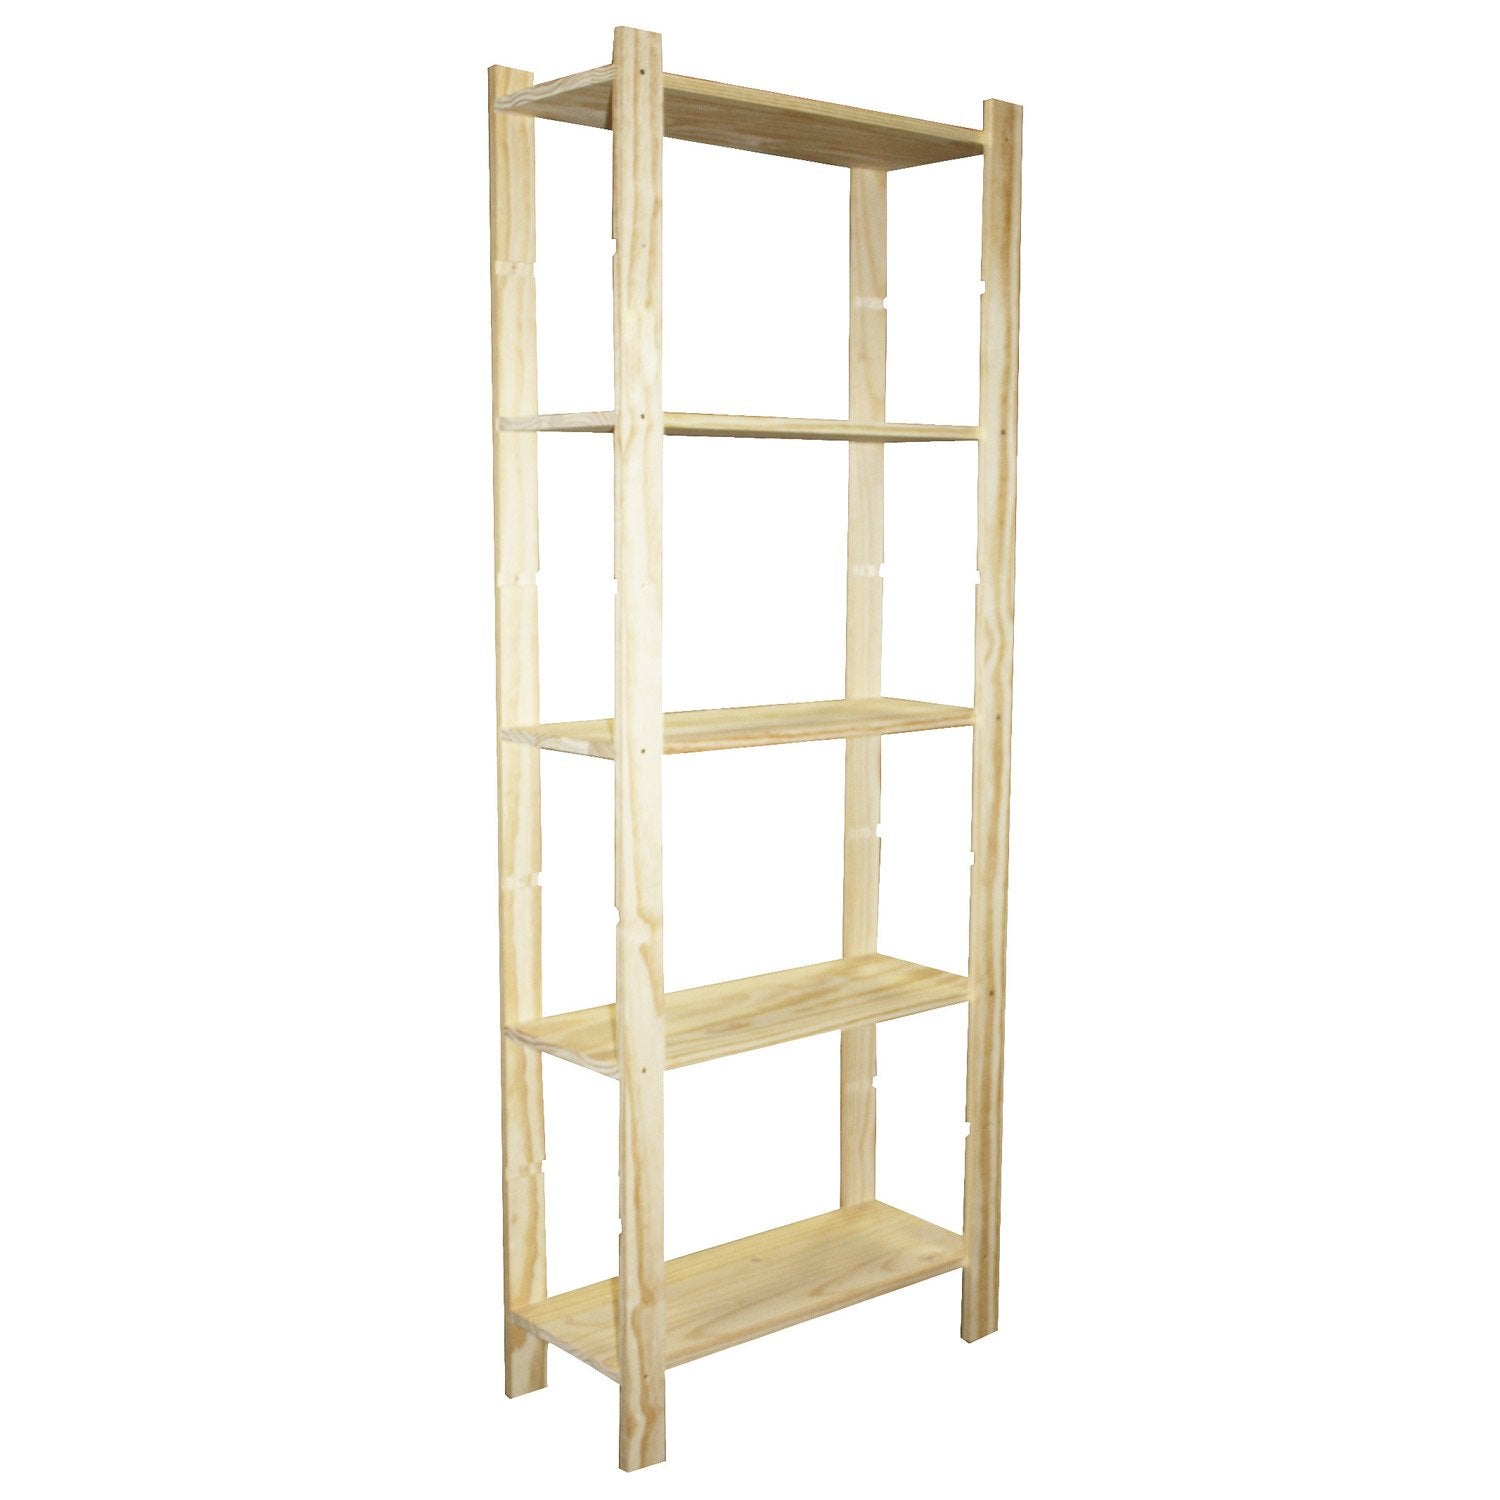 Etag re pin 5 tablettes x x cm leroy merlin - Etagere leroy merlin ...